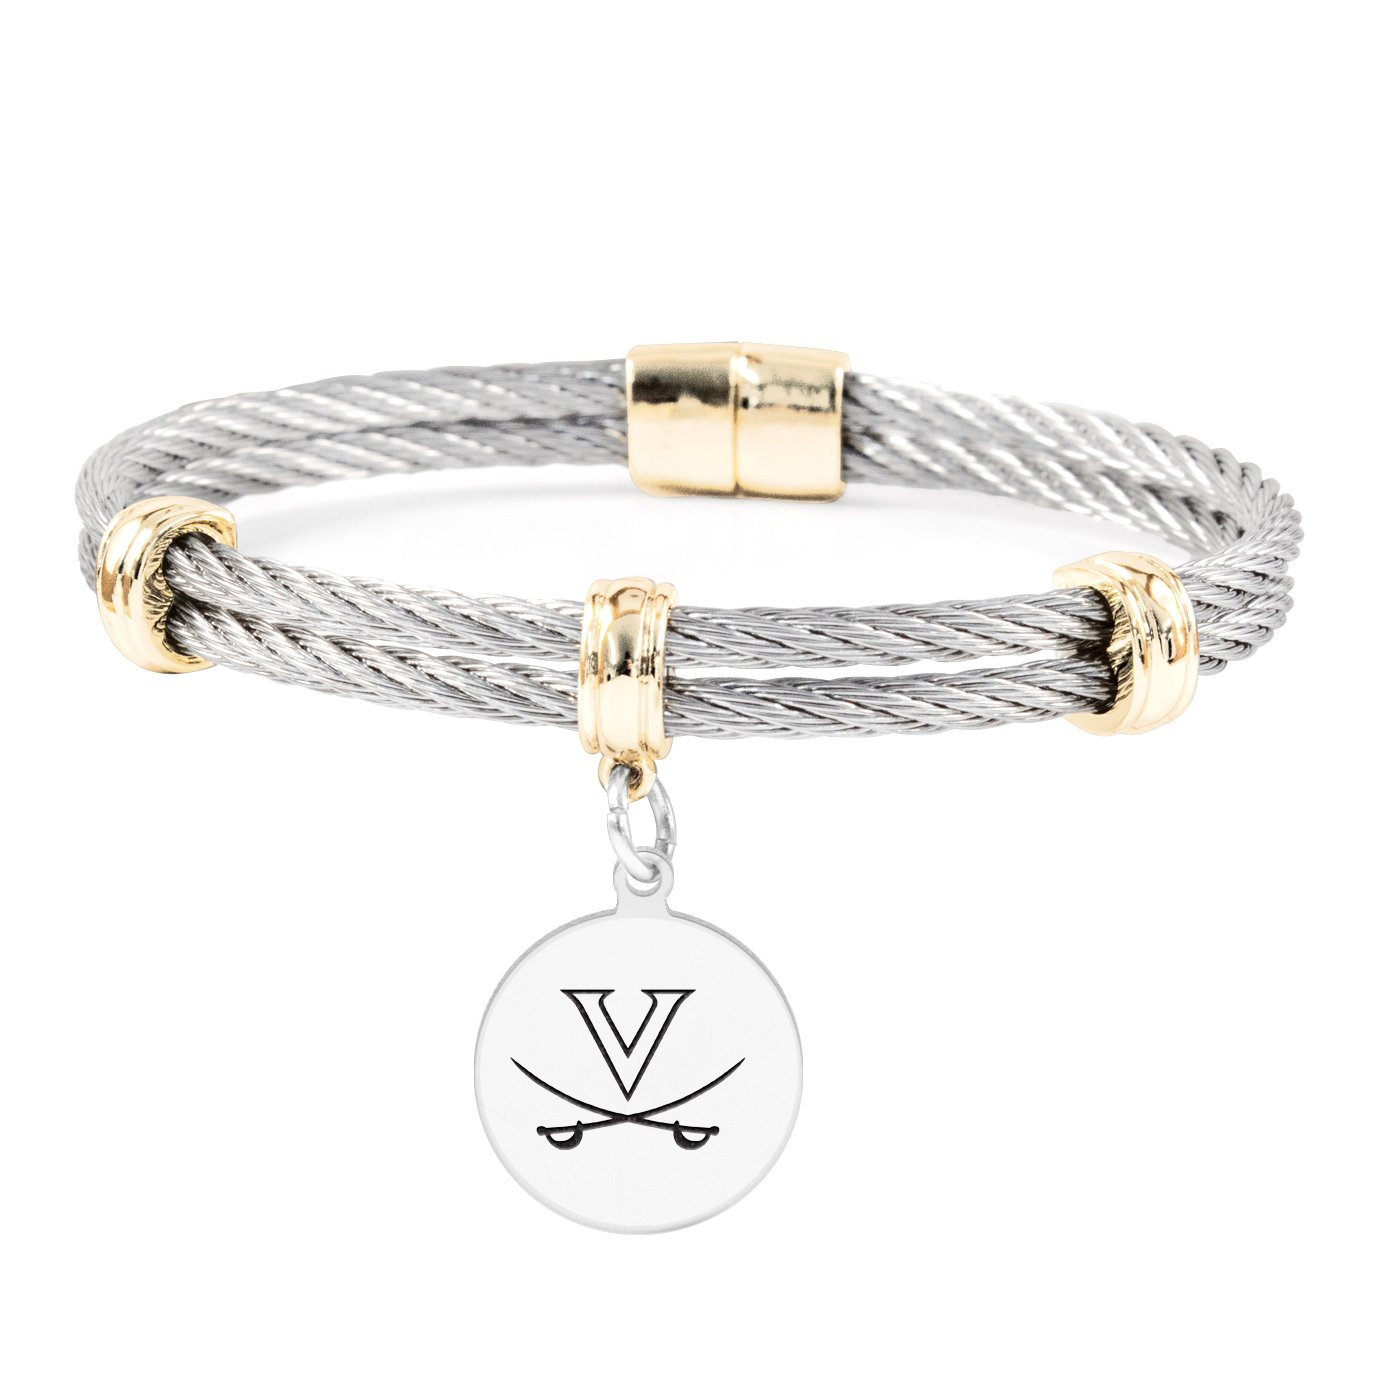 Stainless Steel Magnetic Clasp Bangles University of Virginia Cavaliers Round Charm Bracelet